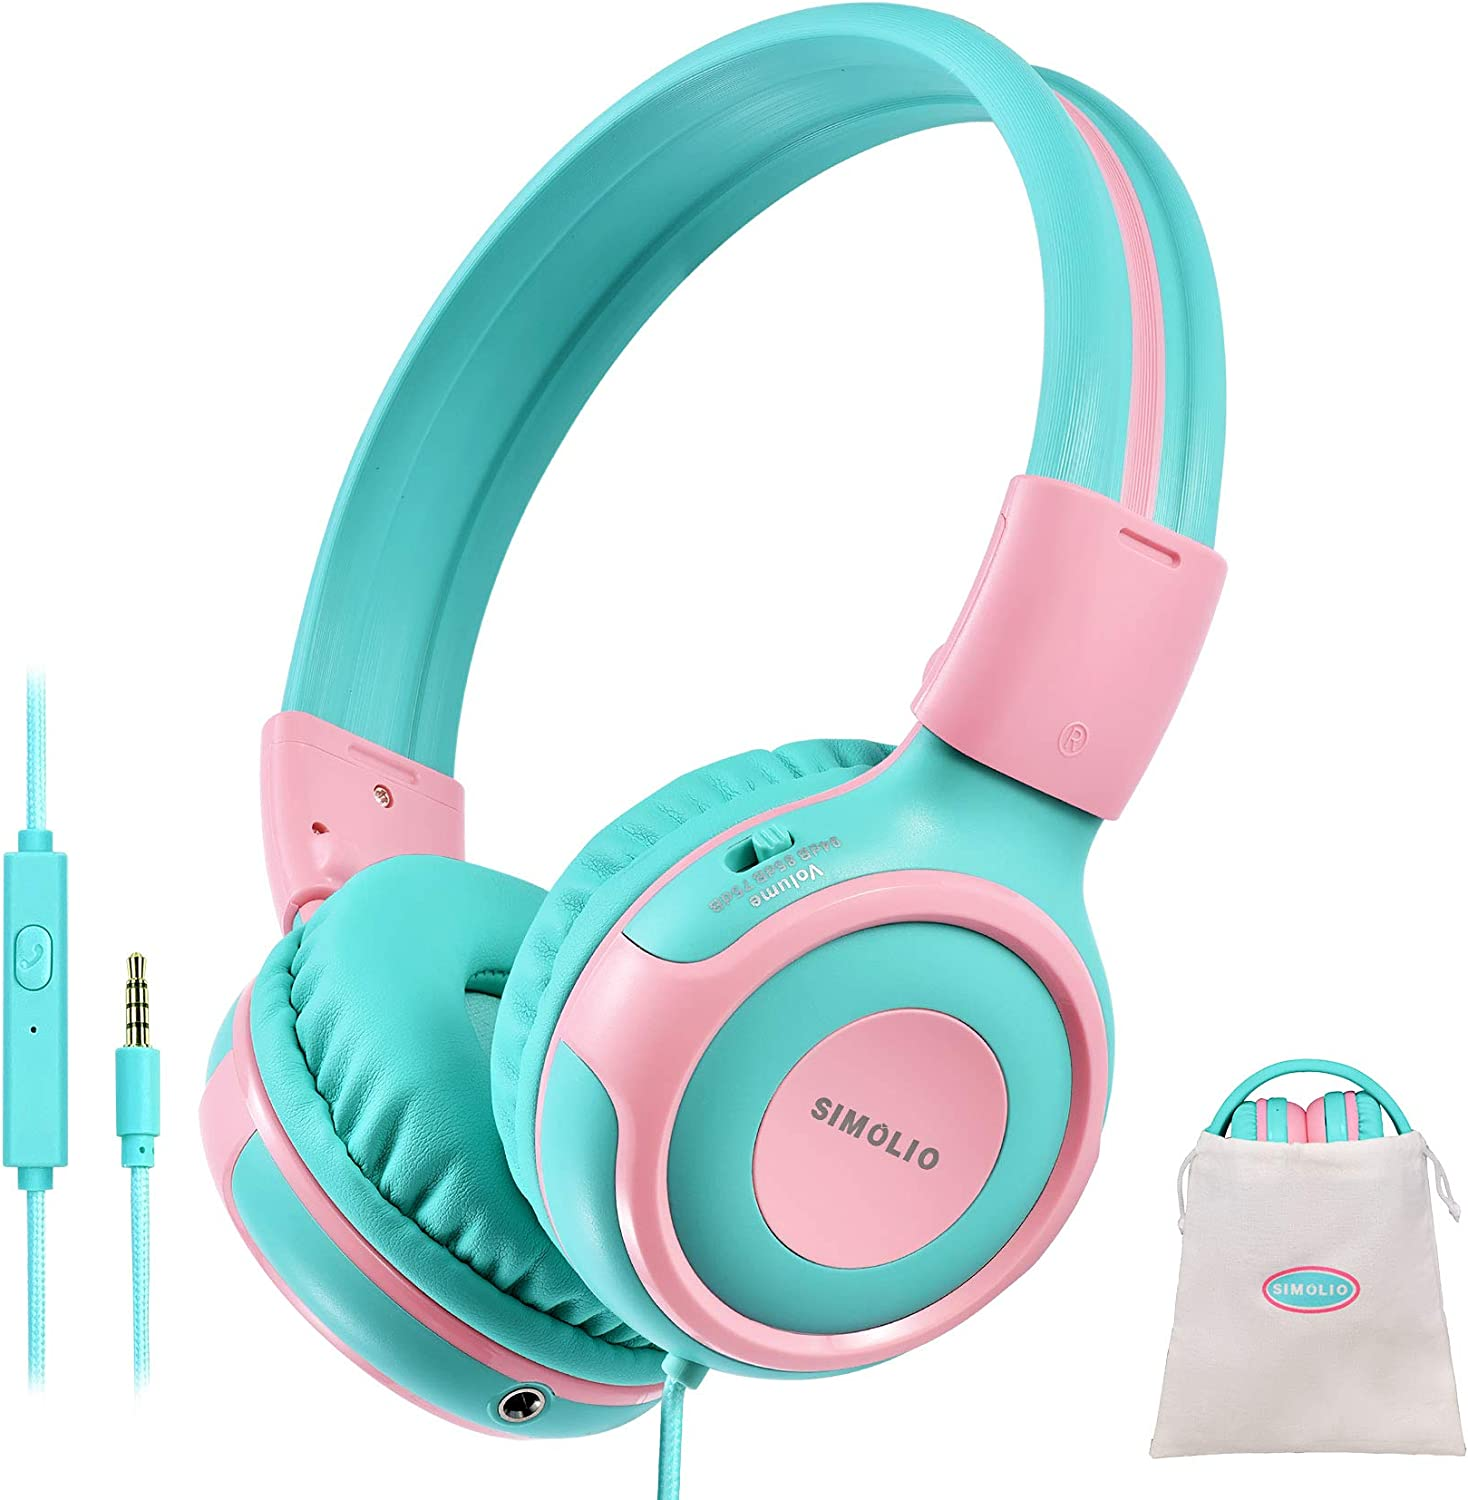 SIMOLIO Kids Headphone with Mic, 75dB,85dB,94dB Volume Limit Share Port, Child Headphones for Tablet/iPad/Kindle/Laptop, Durable Toddler Headphones with Portable Bag, Wired Headsets for Girls, Boys